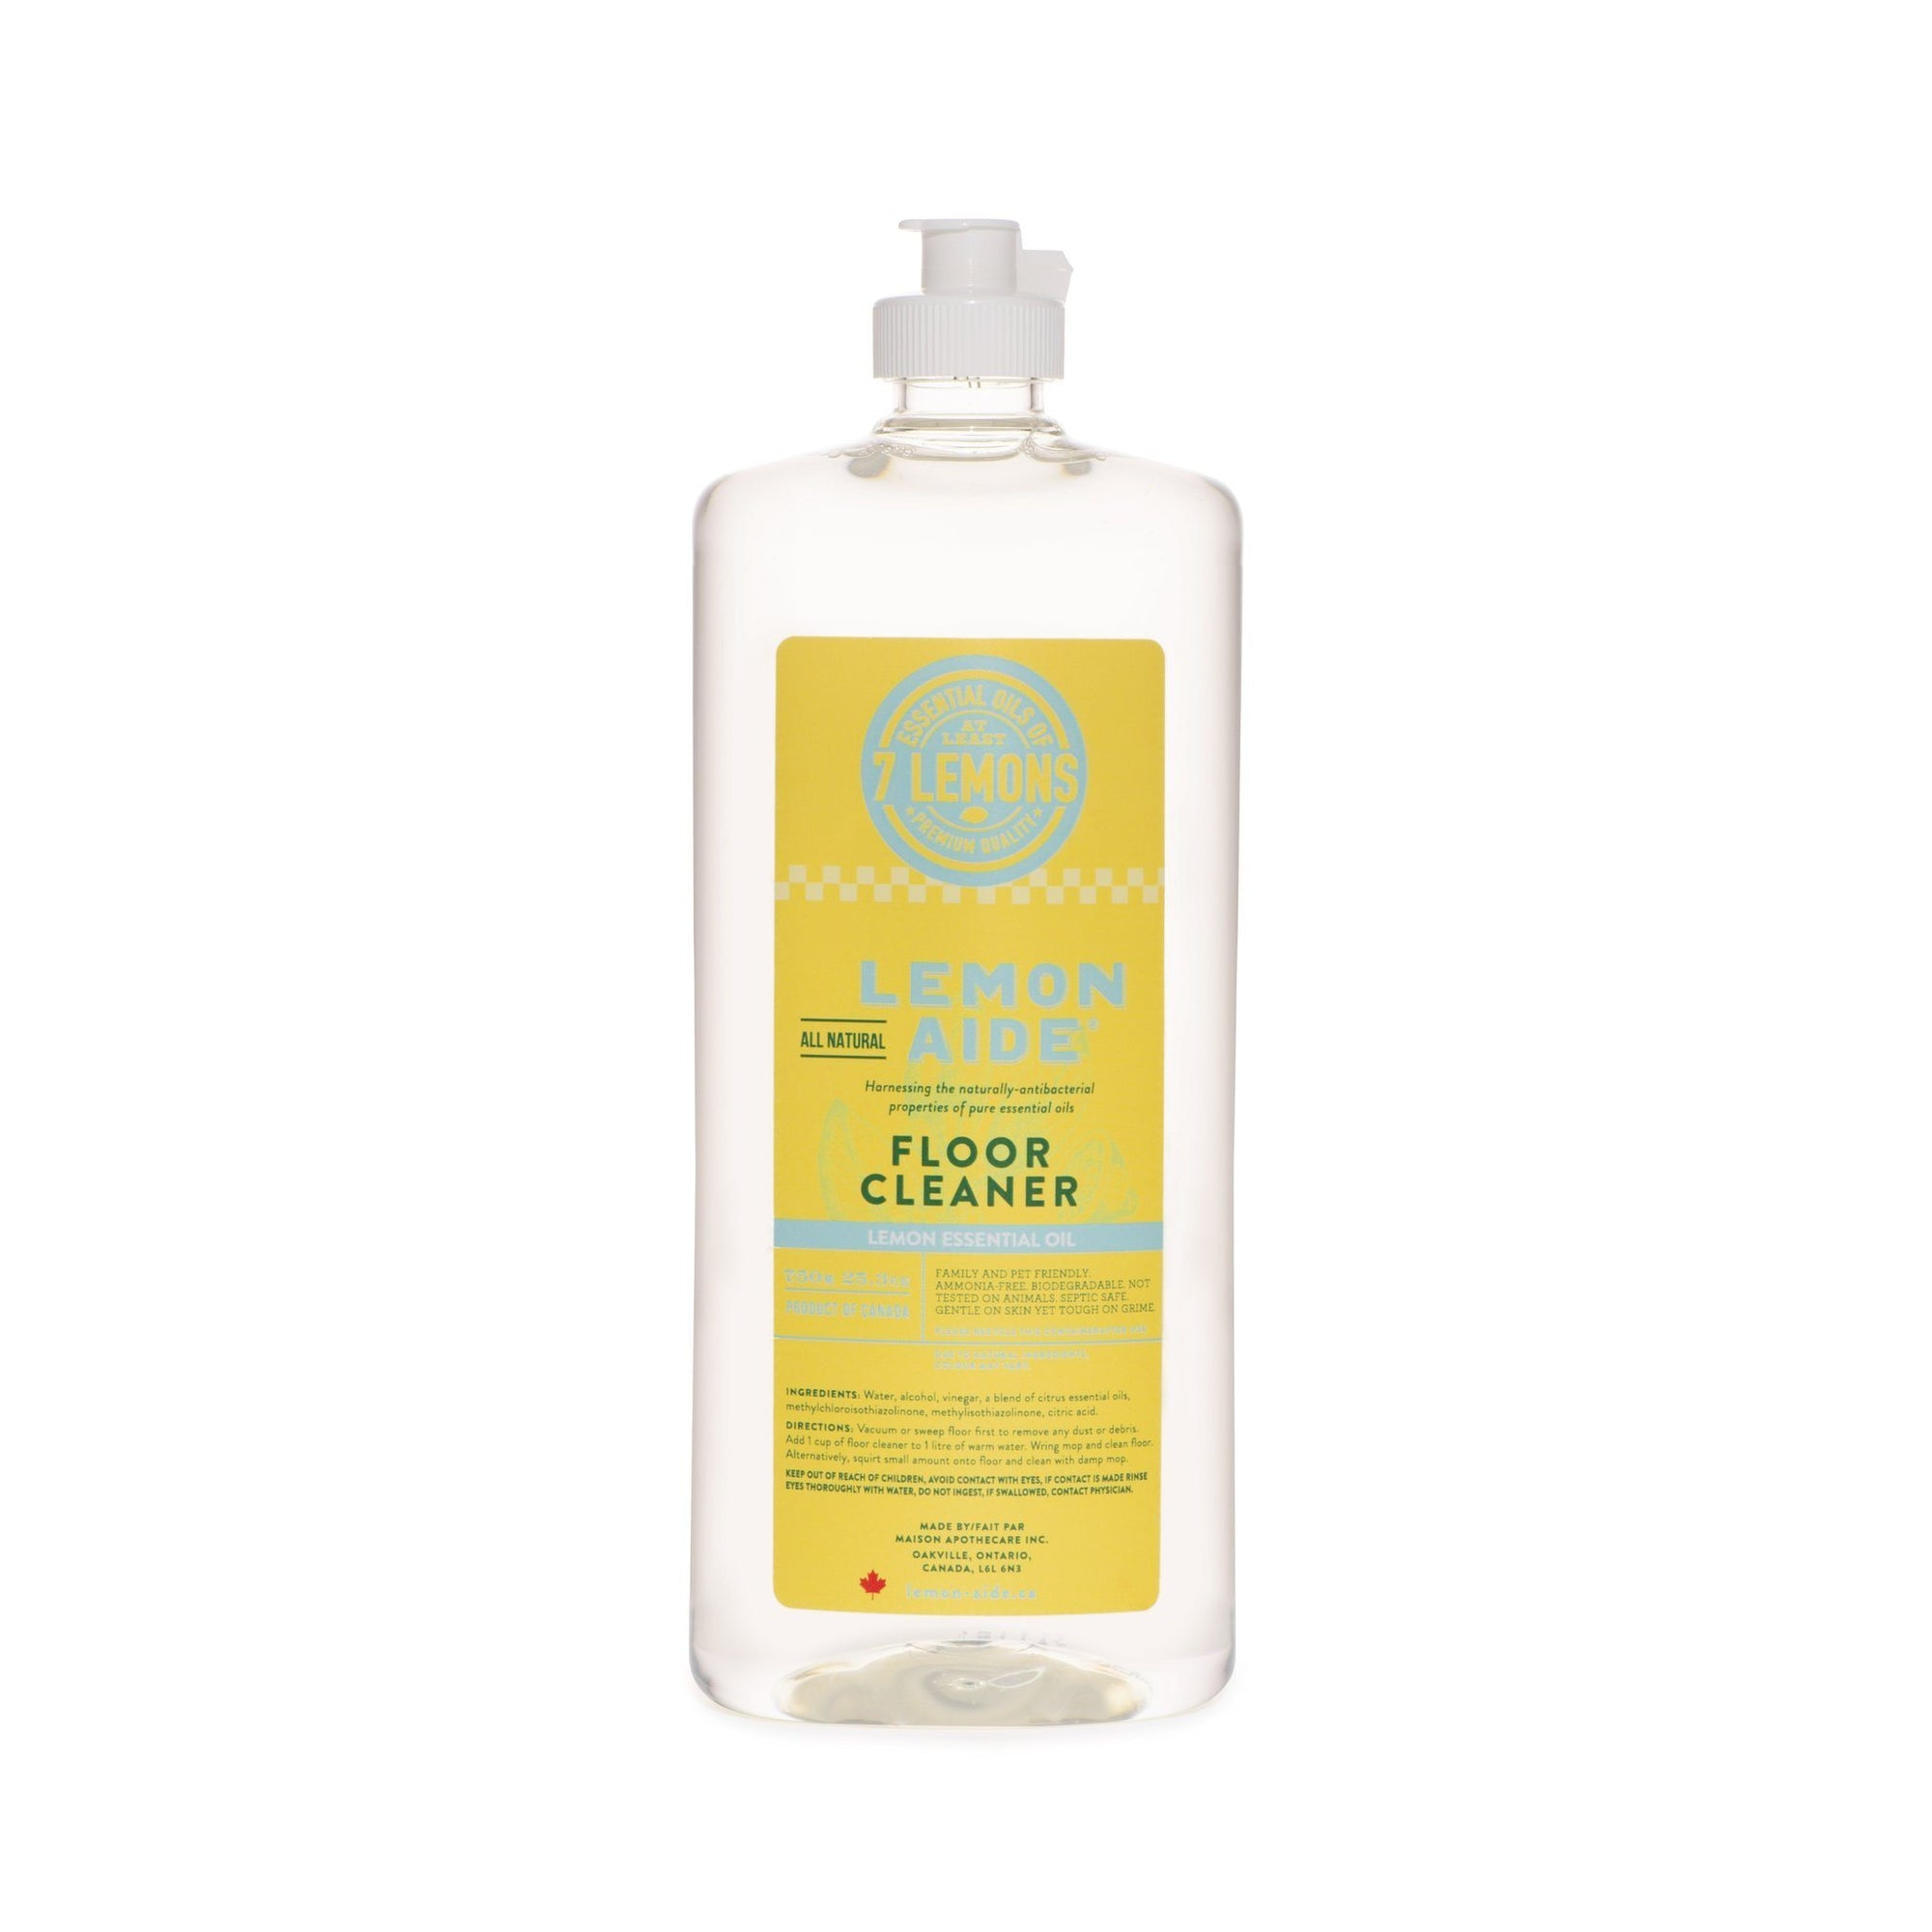 Healthy Lifestyles - Lemon Aide - Lemon Floor Cleaner, 750ml